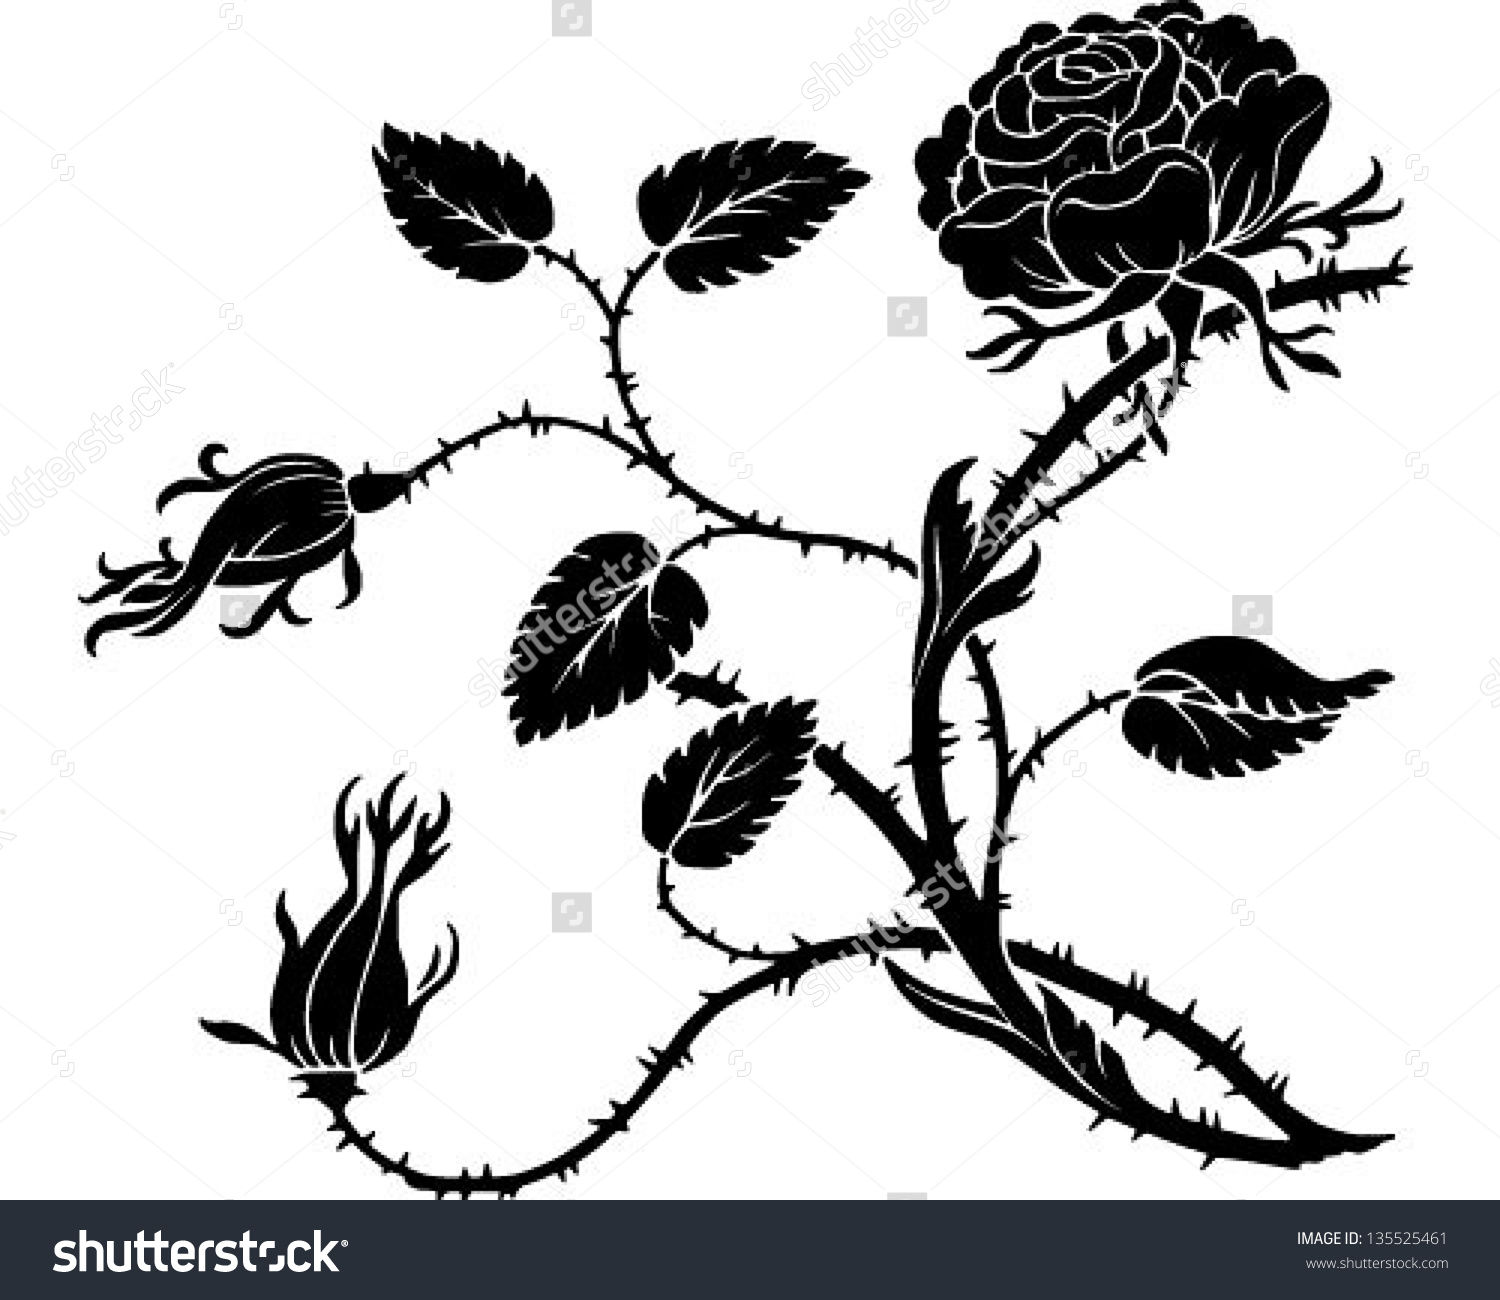 1500x1300 Rose Plant With Thorns Clipart